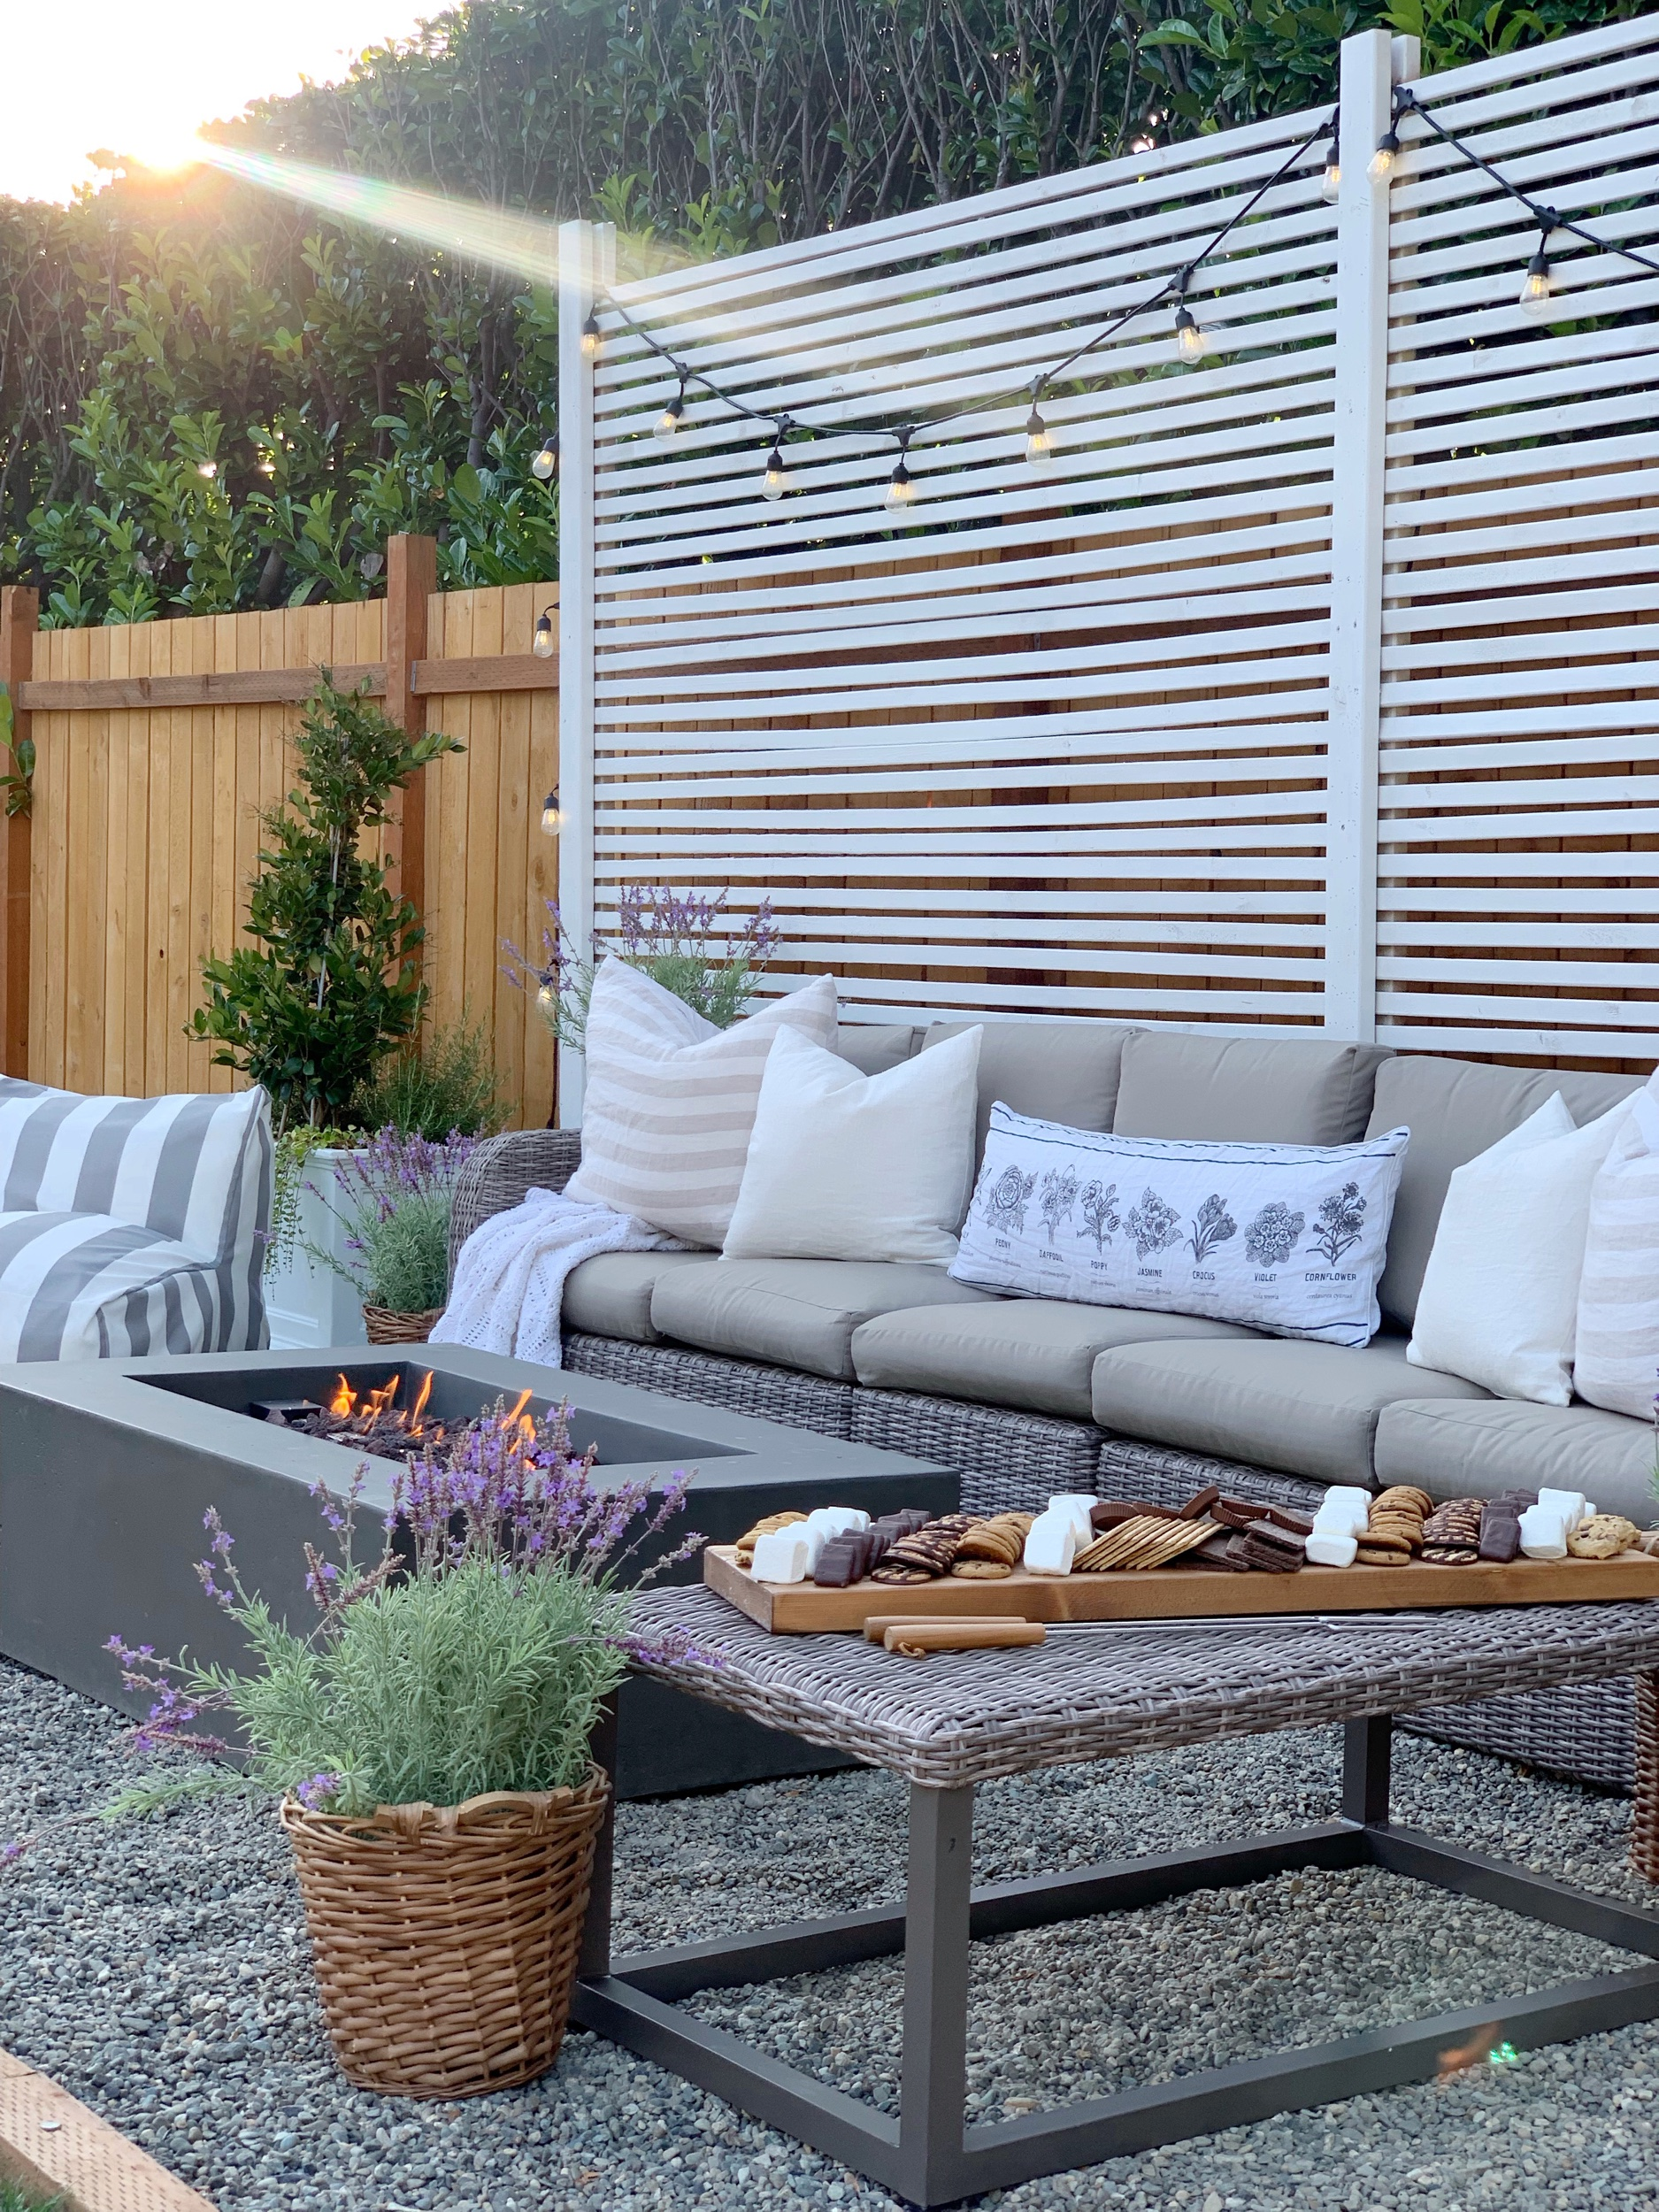 Pretty baskets of lavender soften up this outdoor space! #lavender #vintagedecor #homedecor #decoratingwithlavender #vintagedecorations #lavender